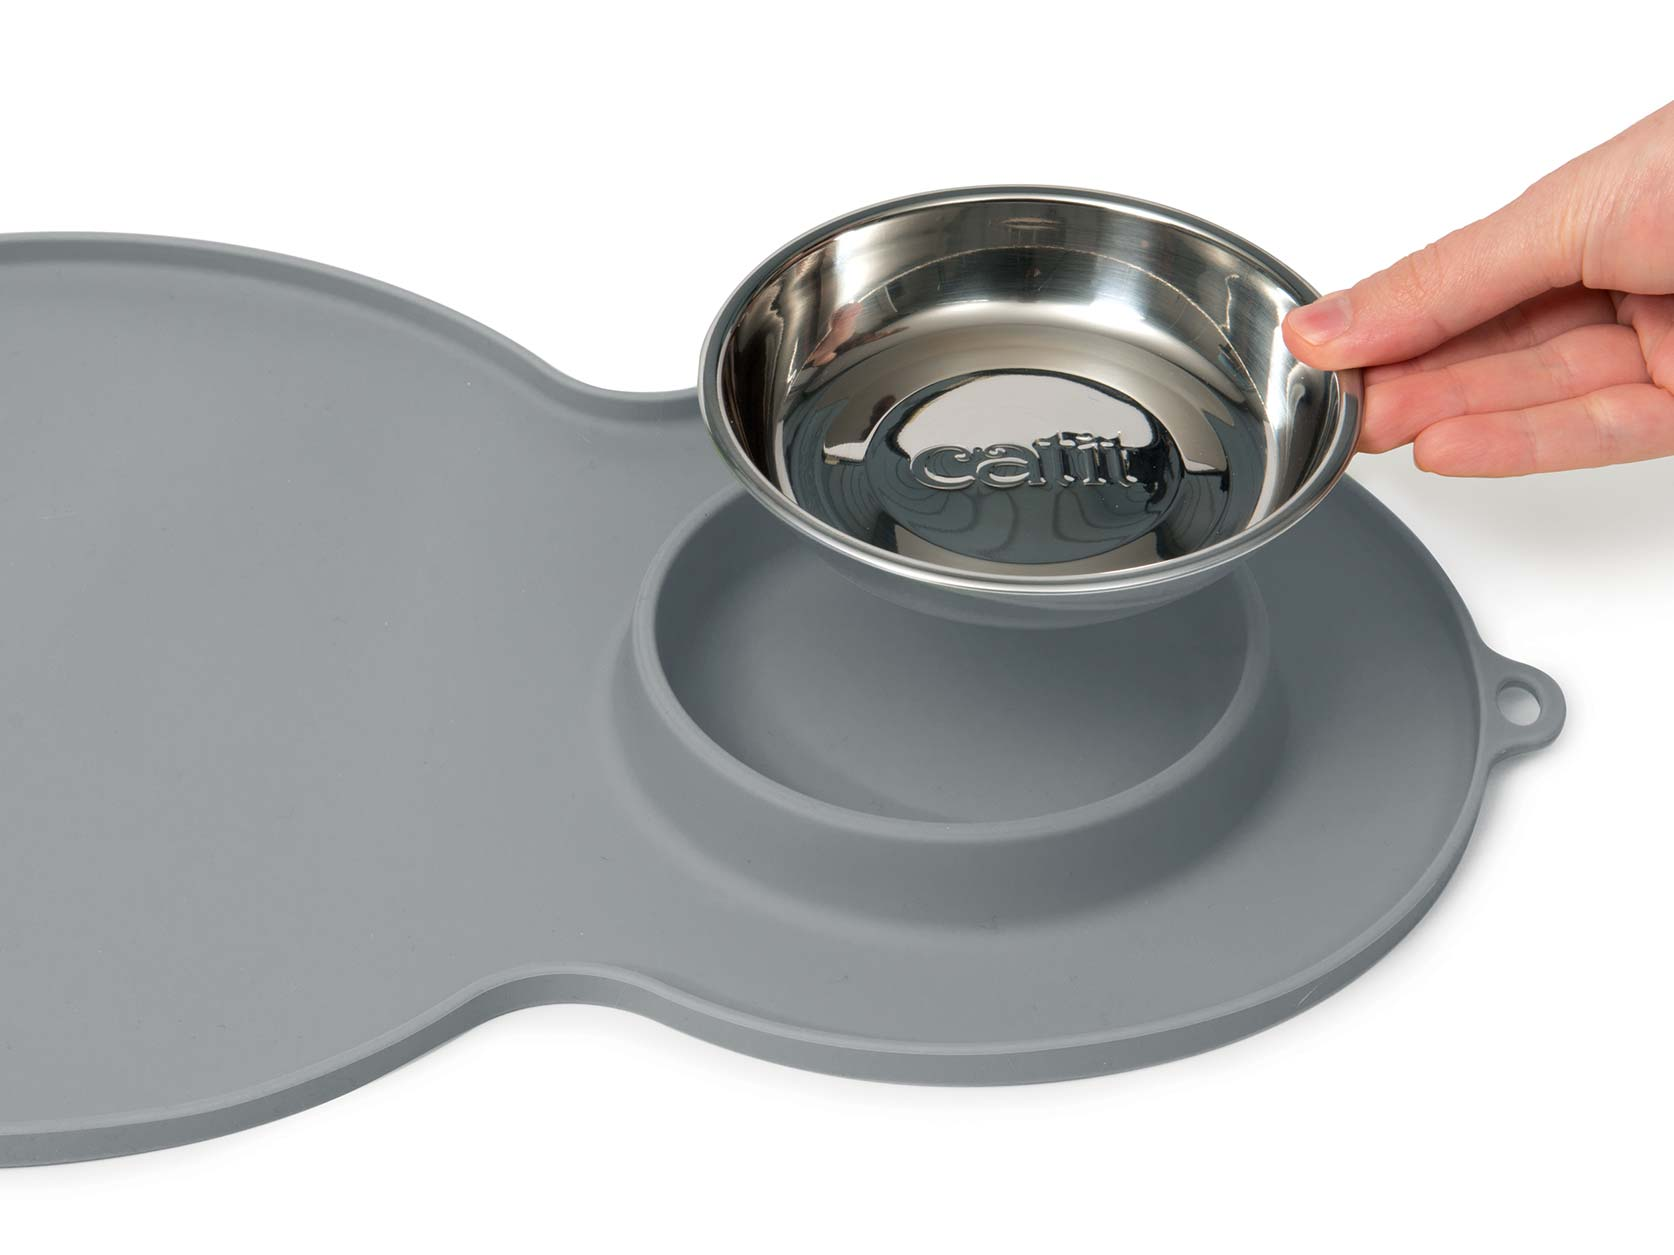 The peanut placemat grey is easy to clean